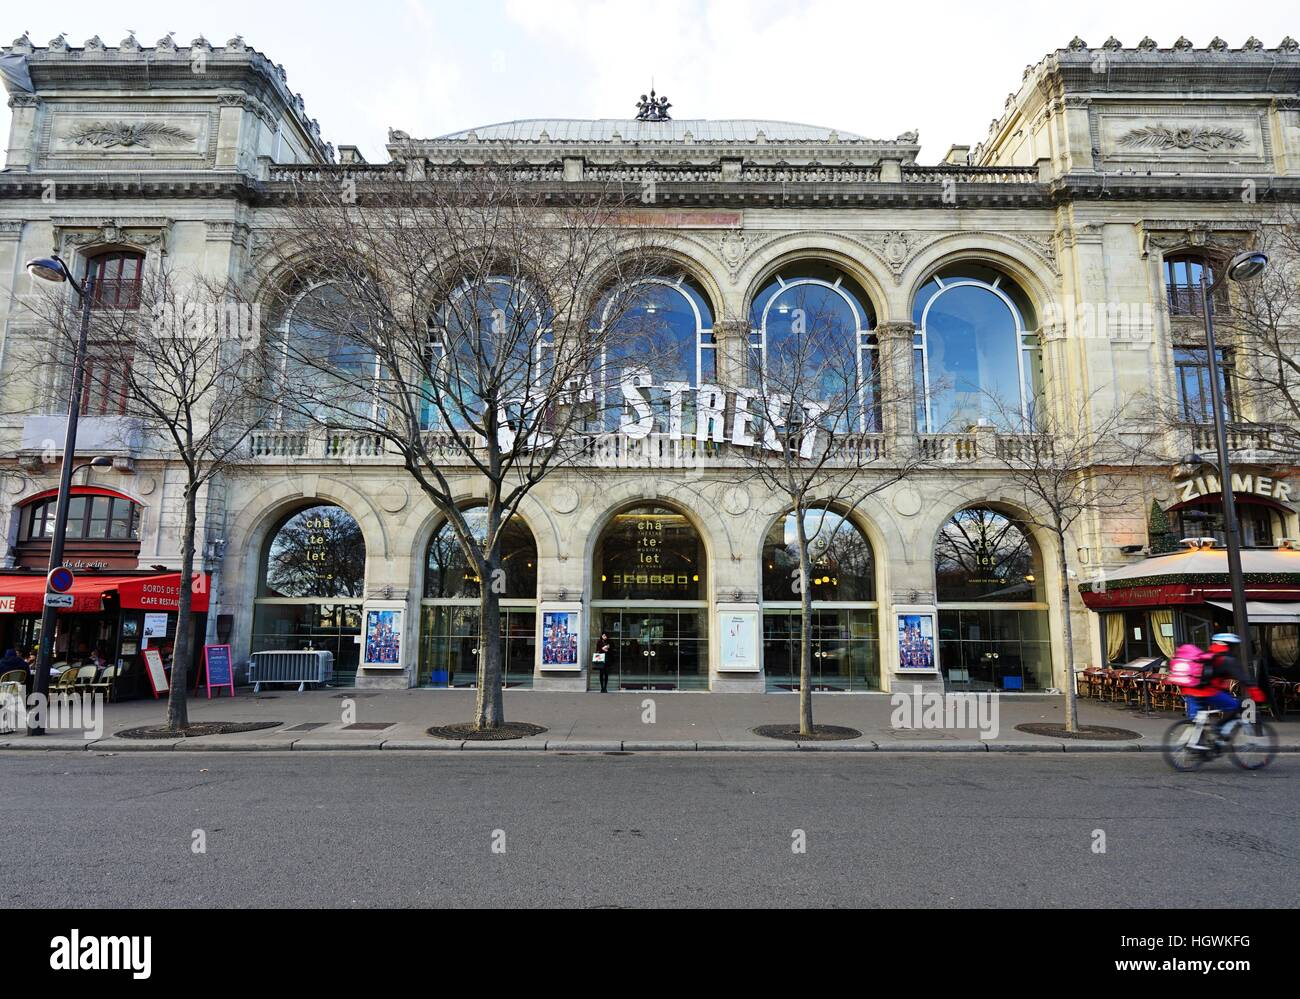 The Theatre du Chatelet theater in Paris showing the American musical 42nd Street - Stock Image